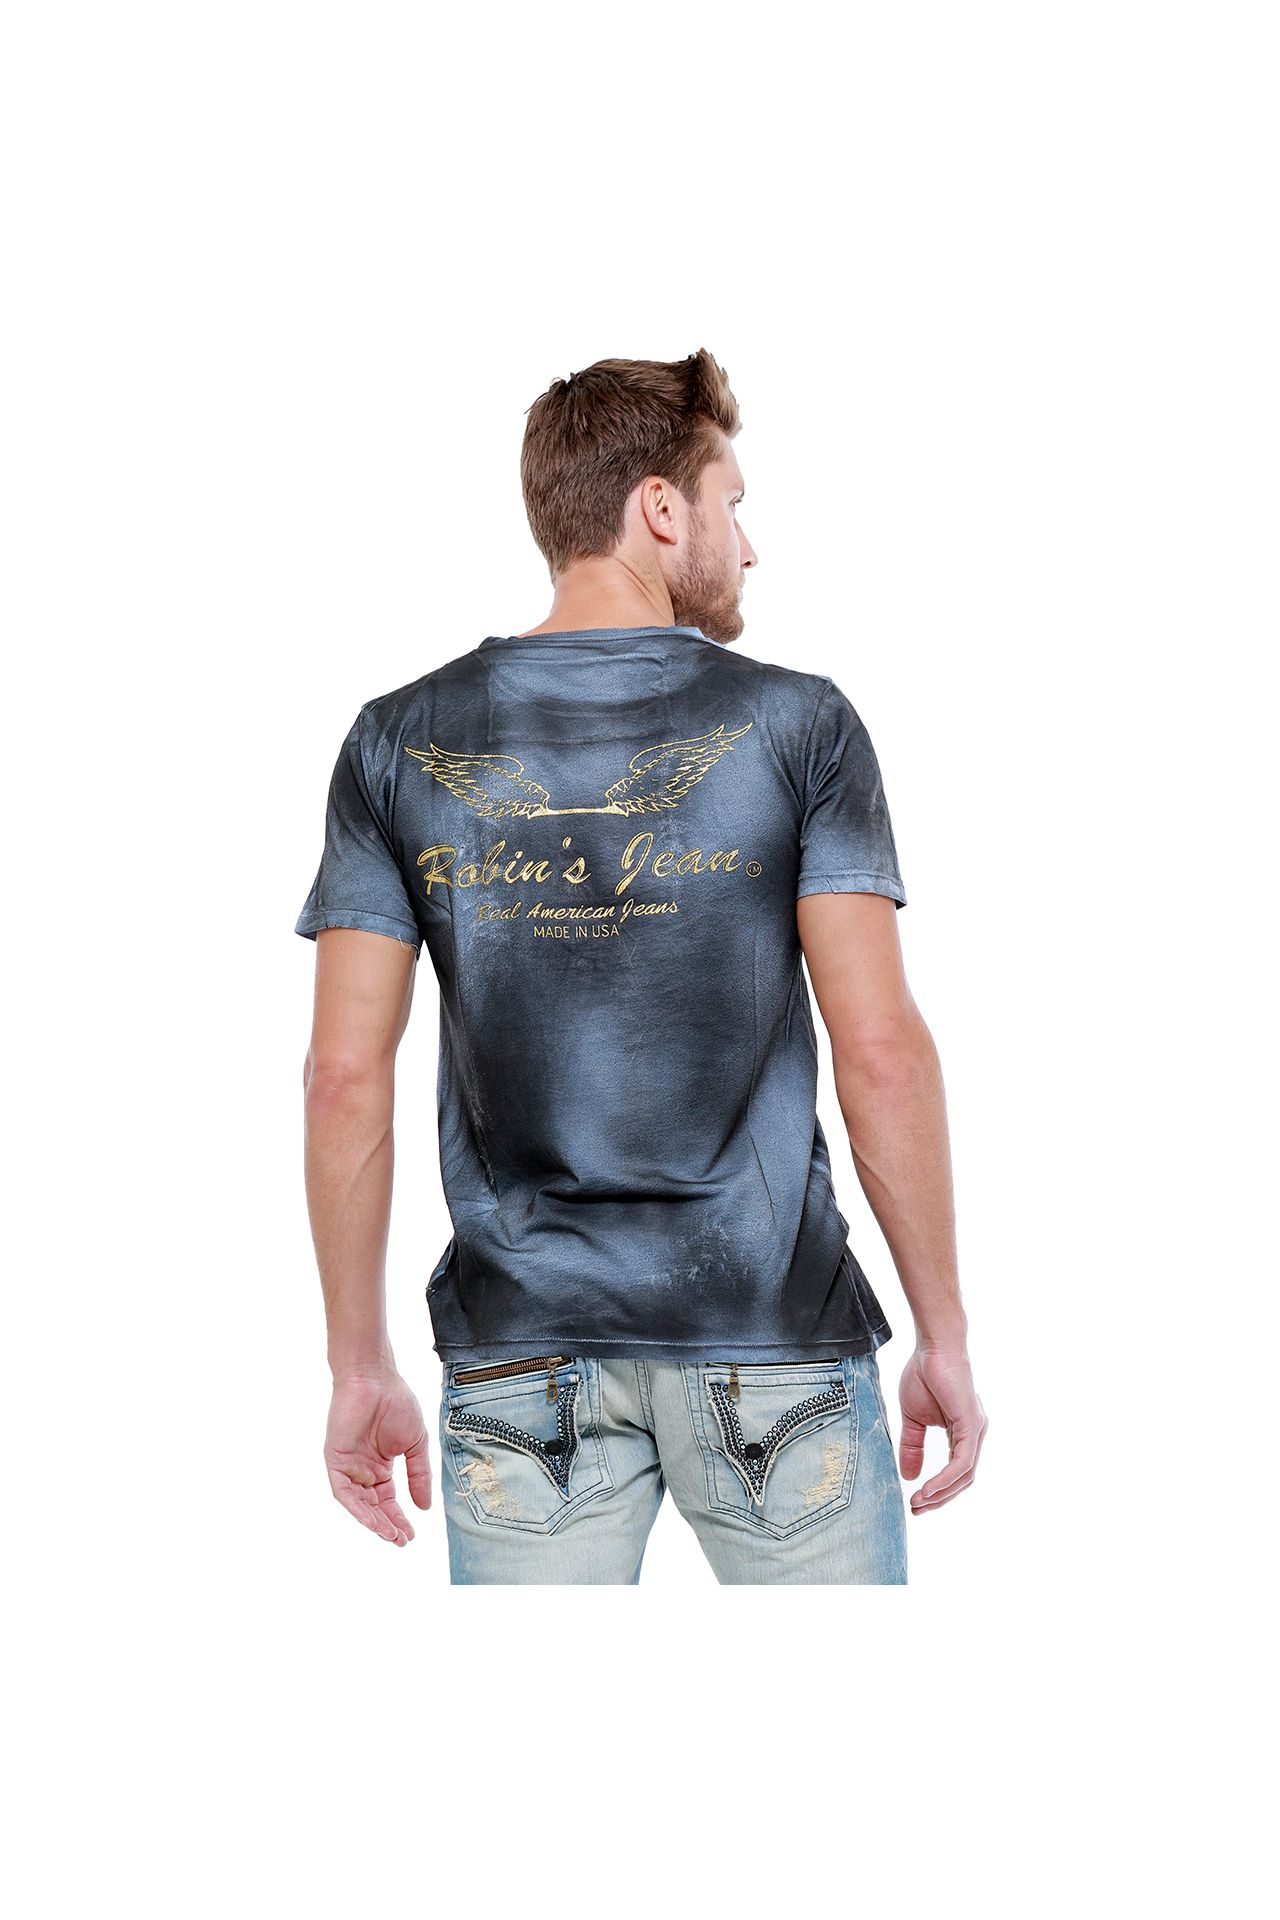 WINGS GOLD GLITTER TEE IN TEMPEST DULL BLUE